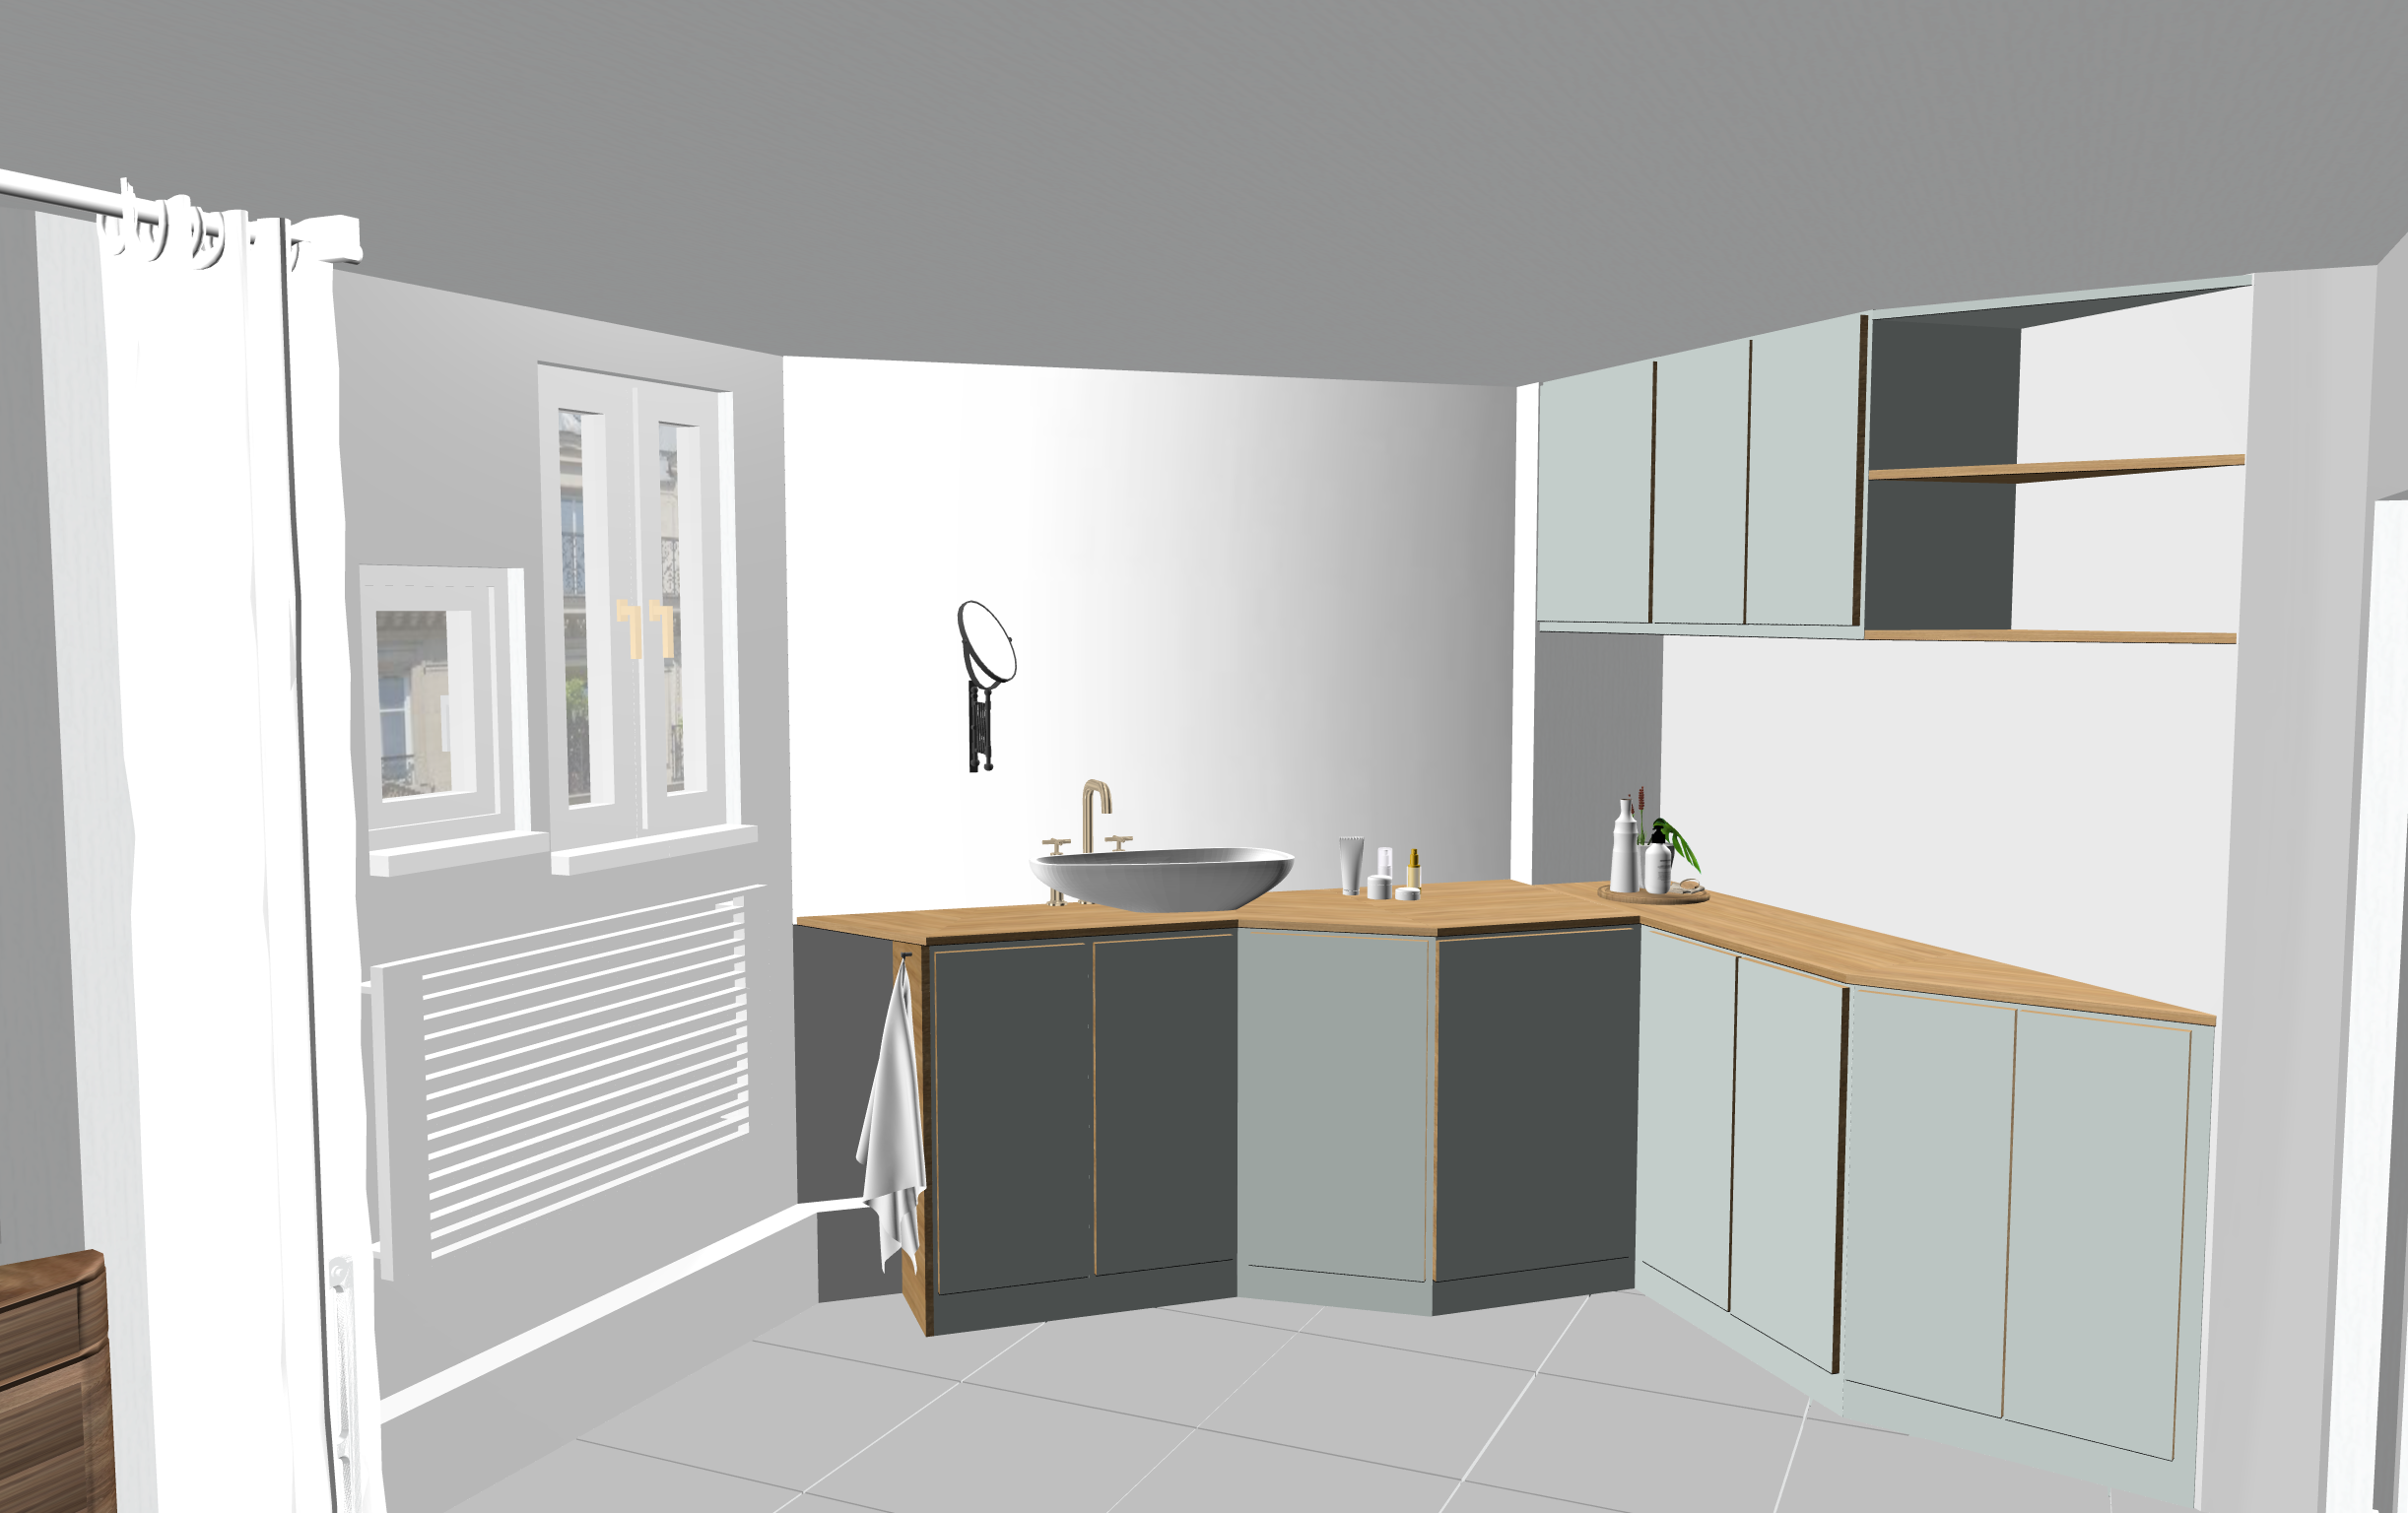 maison_bou_2019_neuilly_3d_2.png